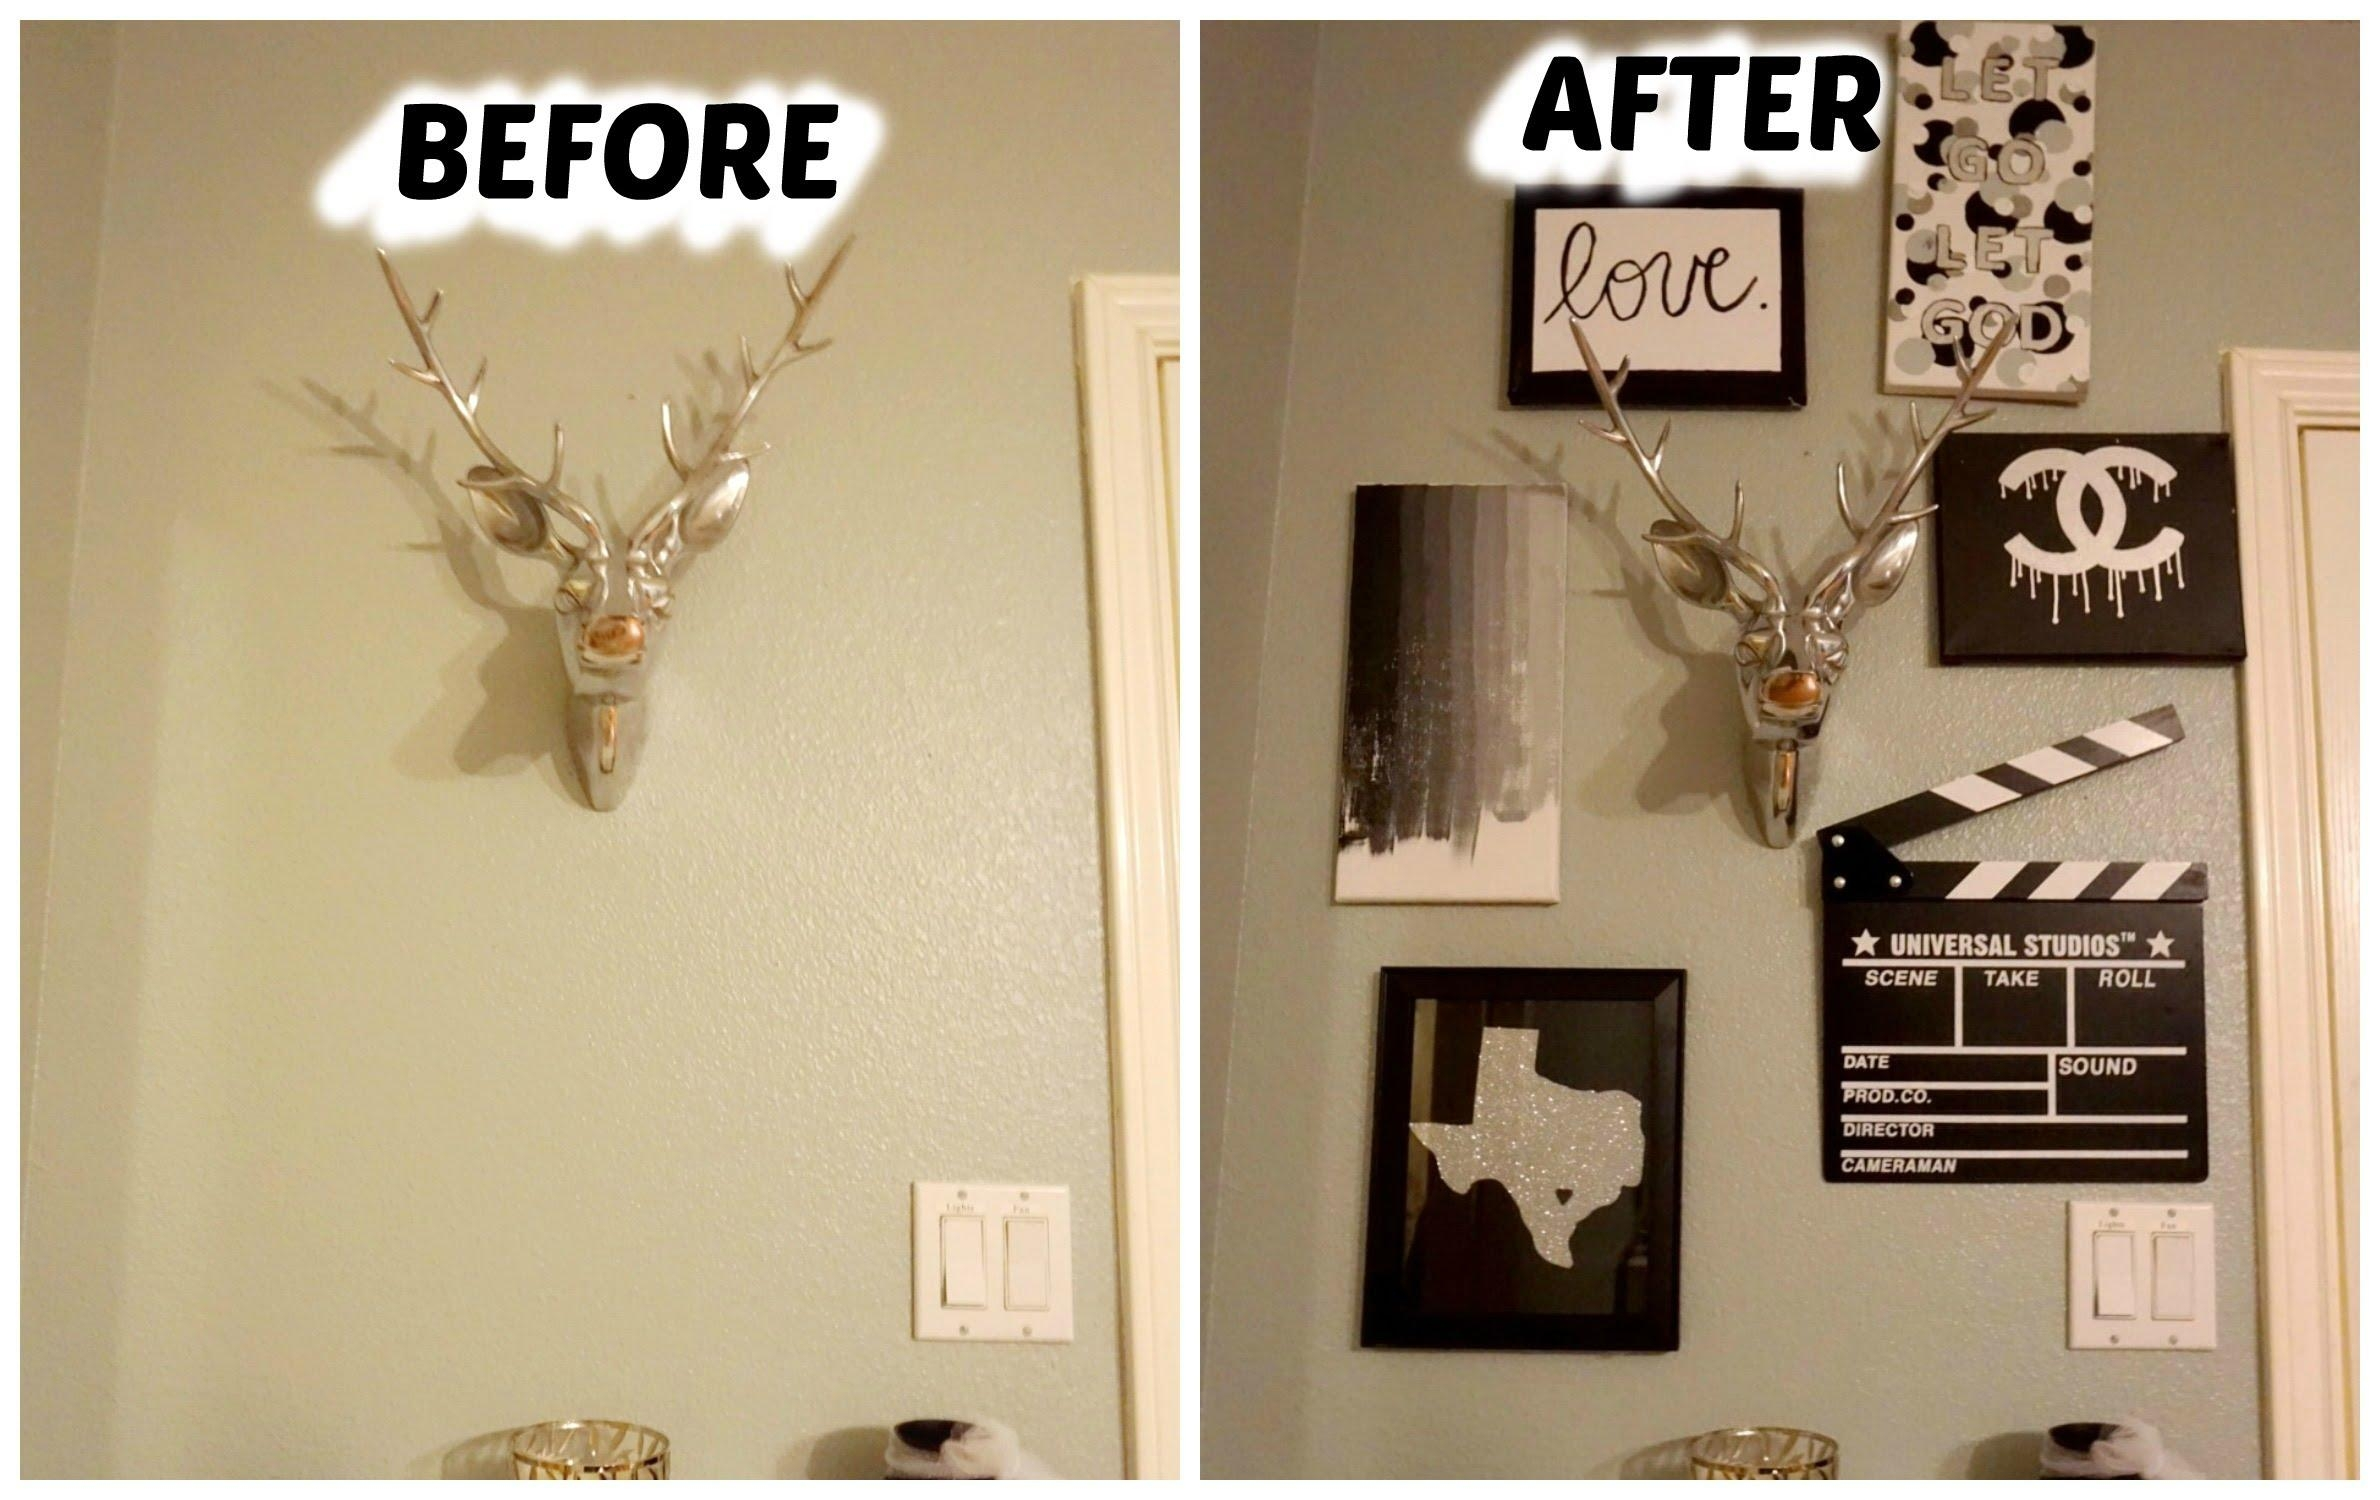 Diy Pinterest Wall Decor – Youtube Regarding Pinterest Diy Wall Art (View 8 of 20)